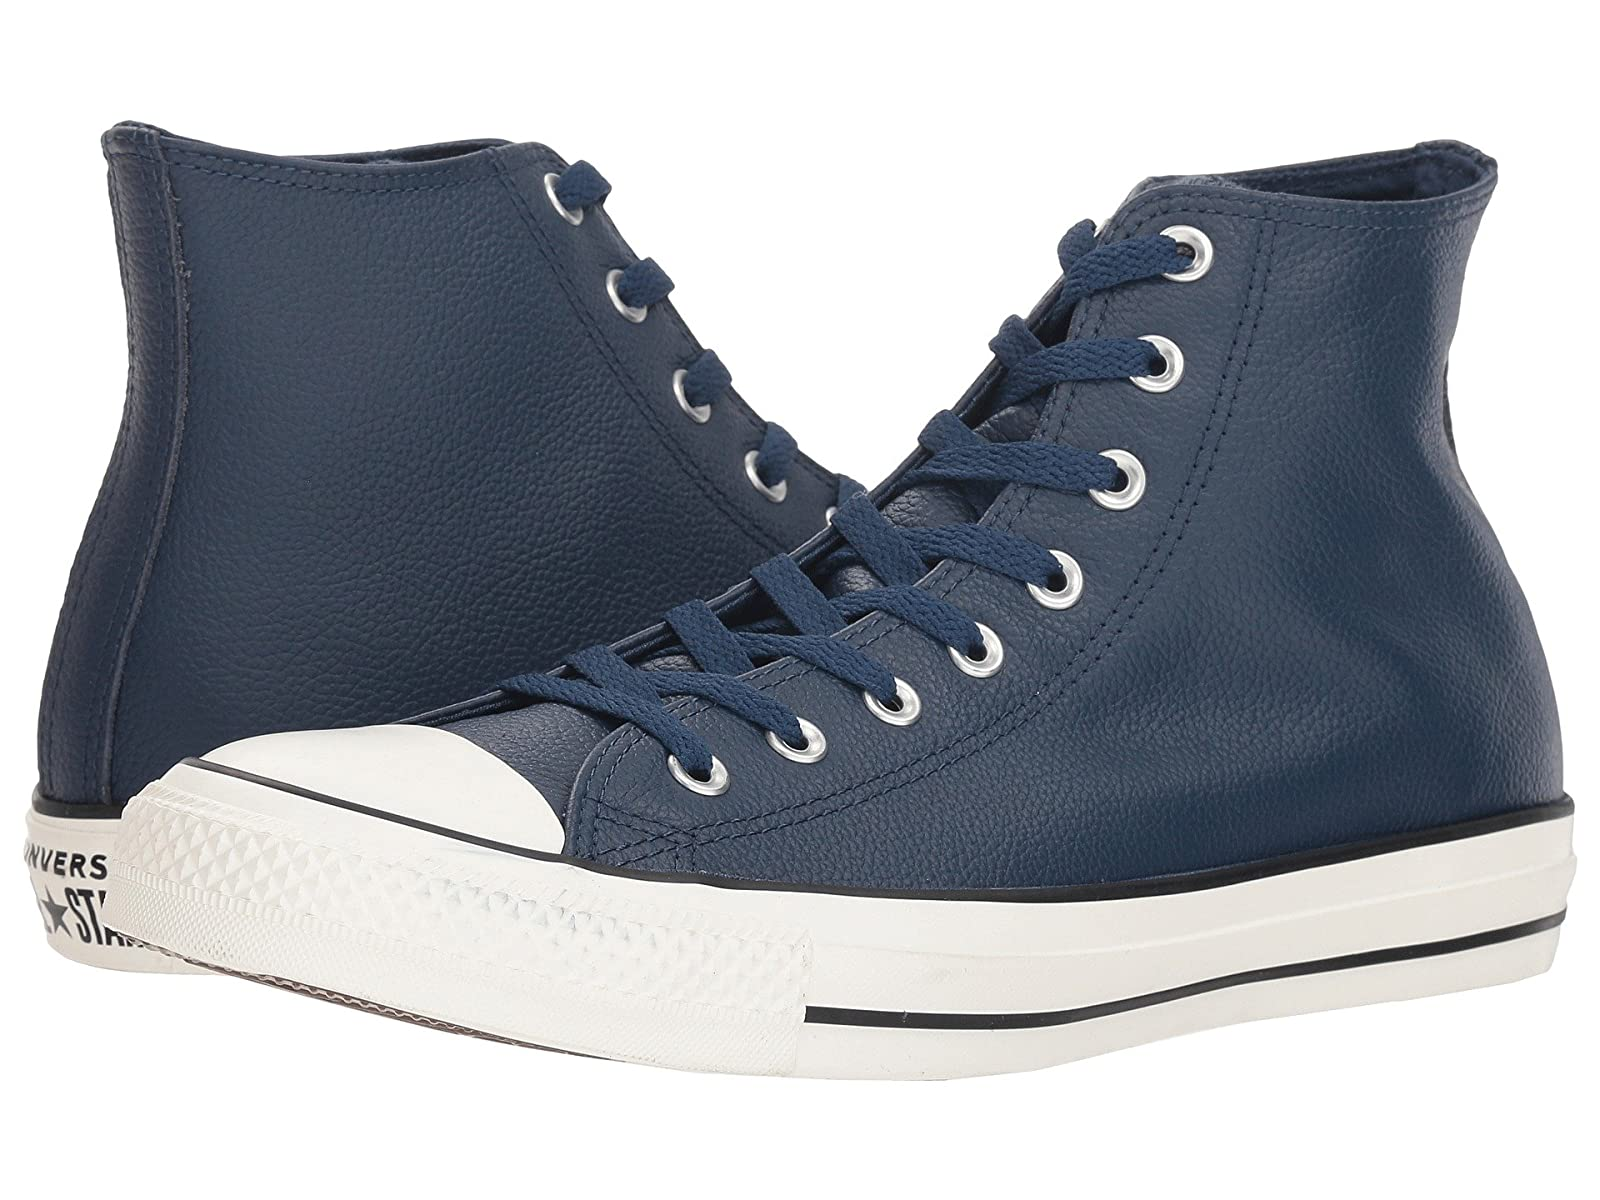 Converse Chuck Taylor All Star - Leather HiAtmospheric grades have affordable shoes